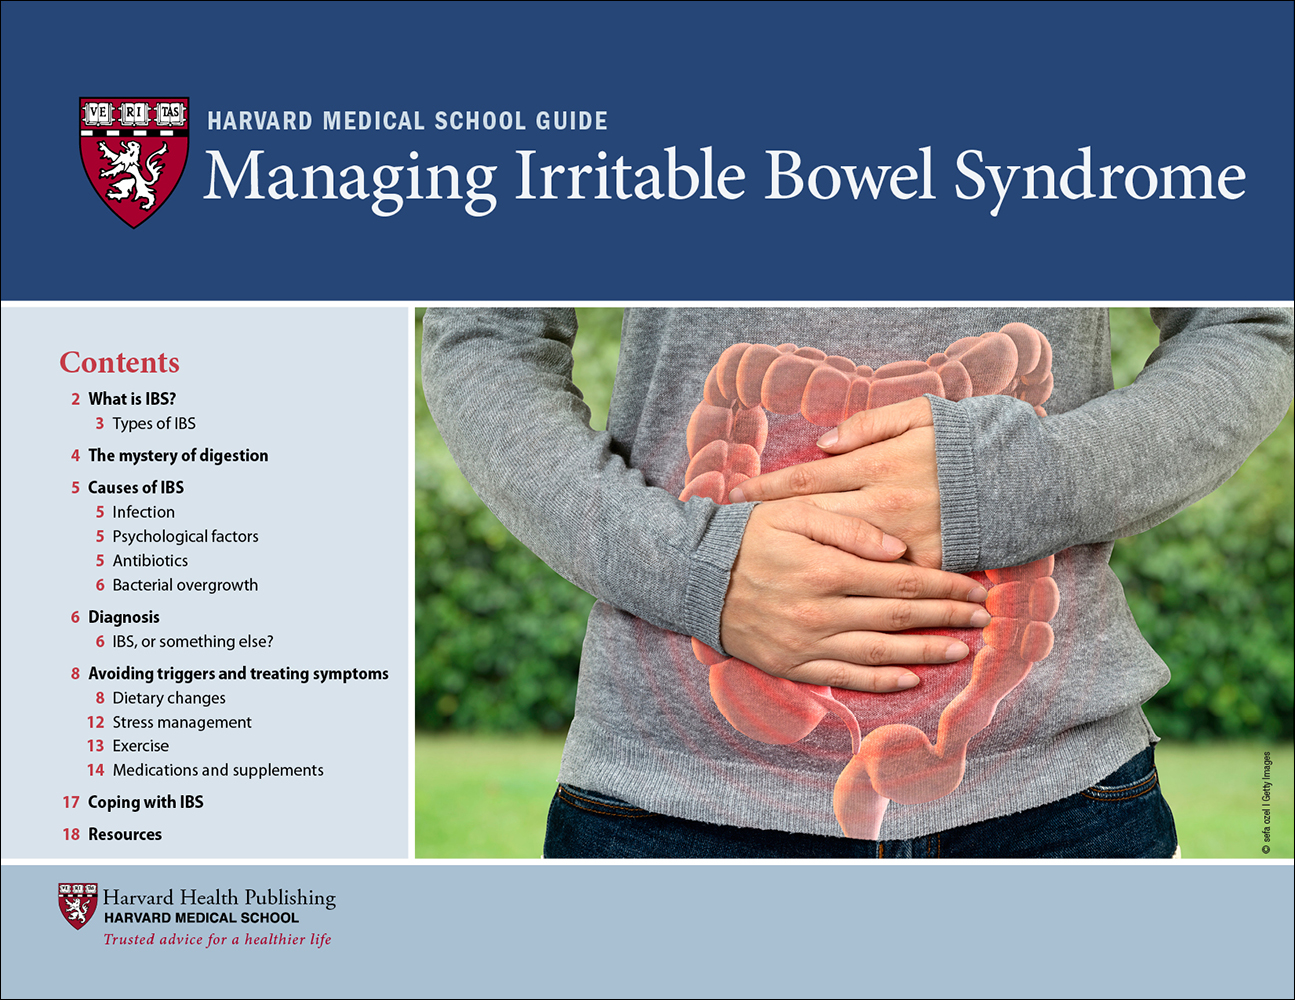 Managing Irritable Bowel Syndrome